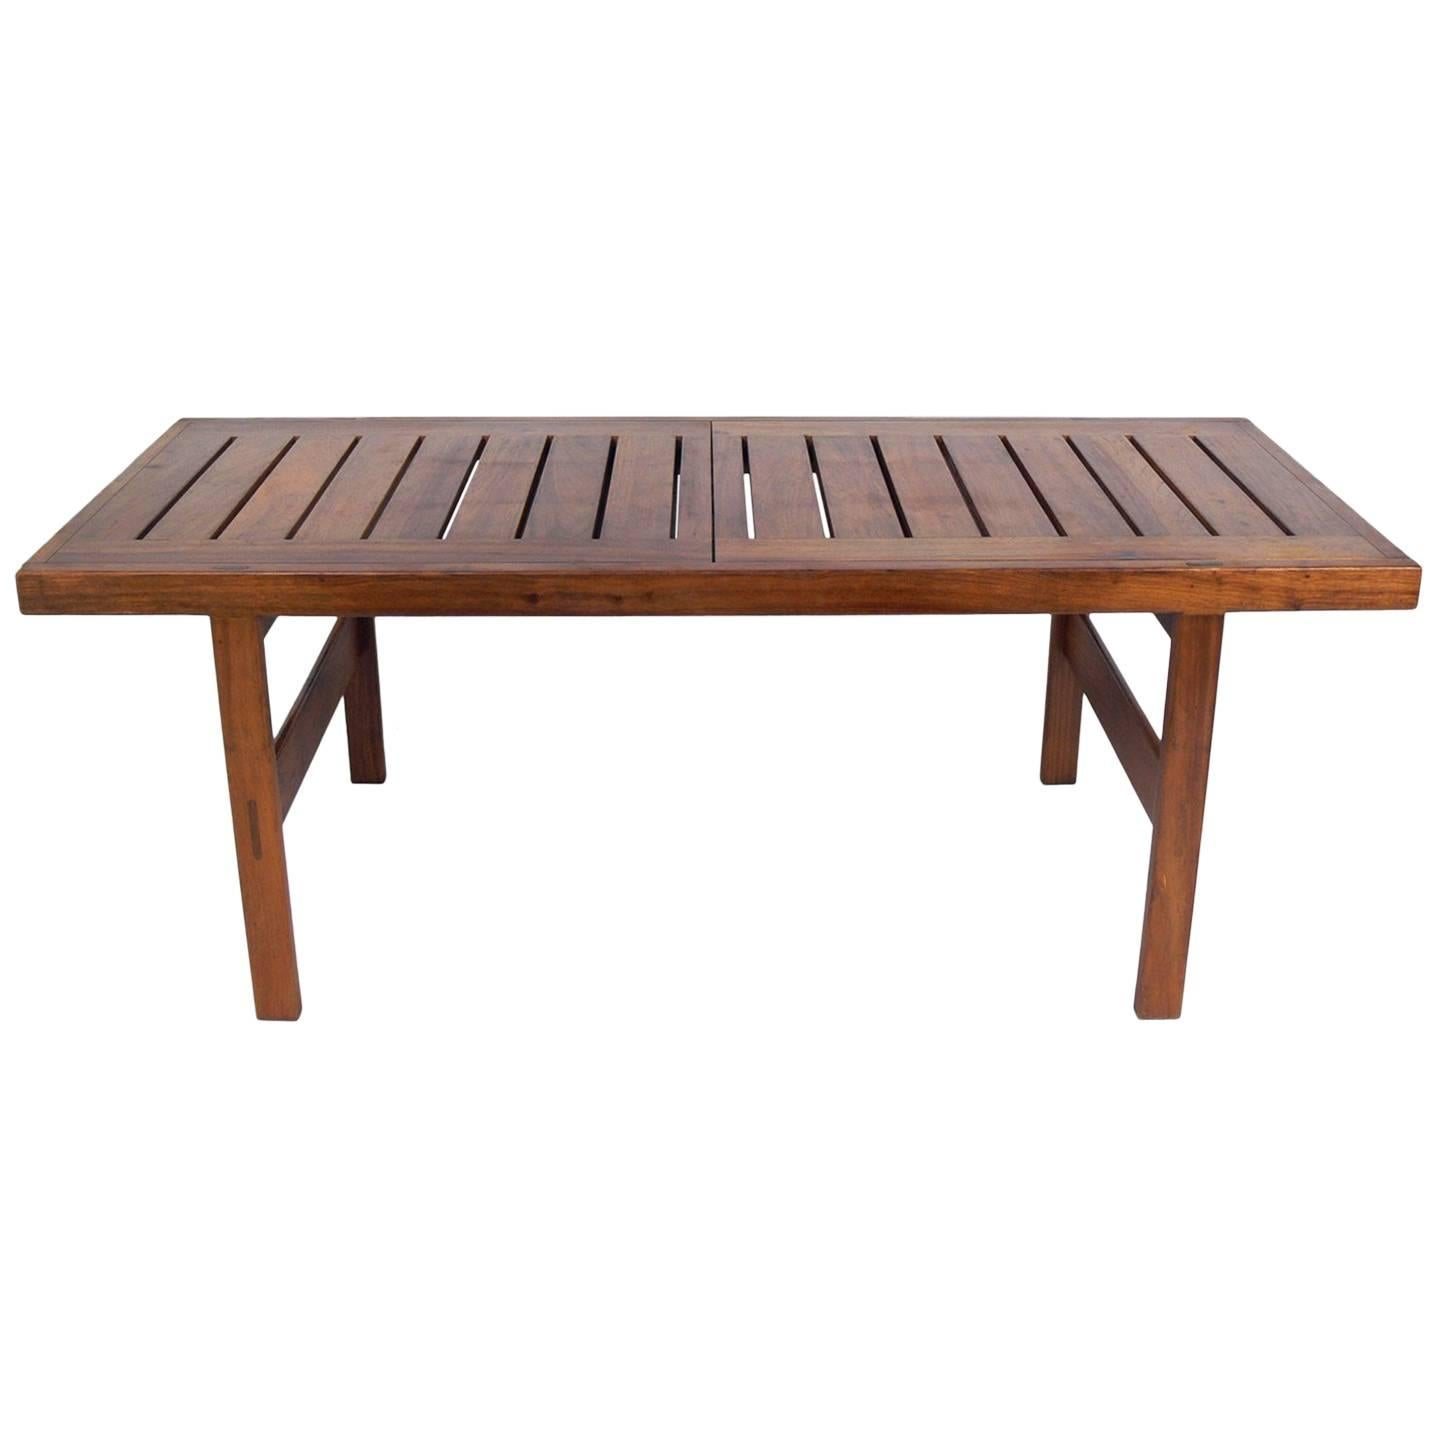 Clean Lined Midcentury Dining Table by John Tabraham